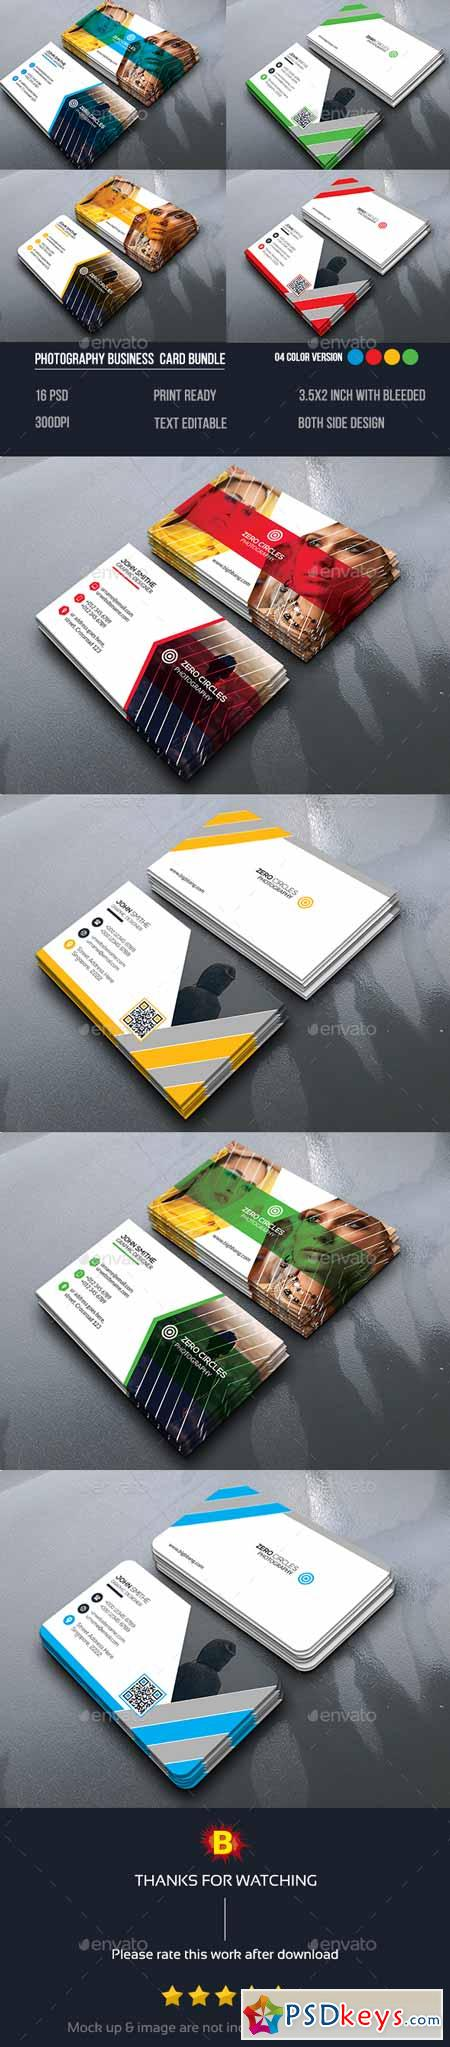 Photography Business Card Bundle 14153049 » Free Download Photoshop ...